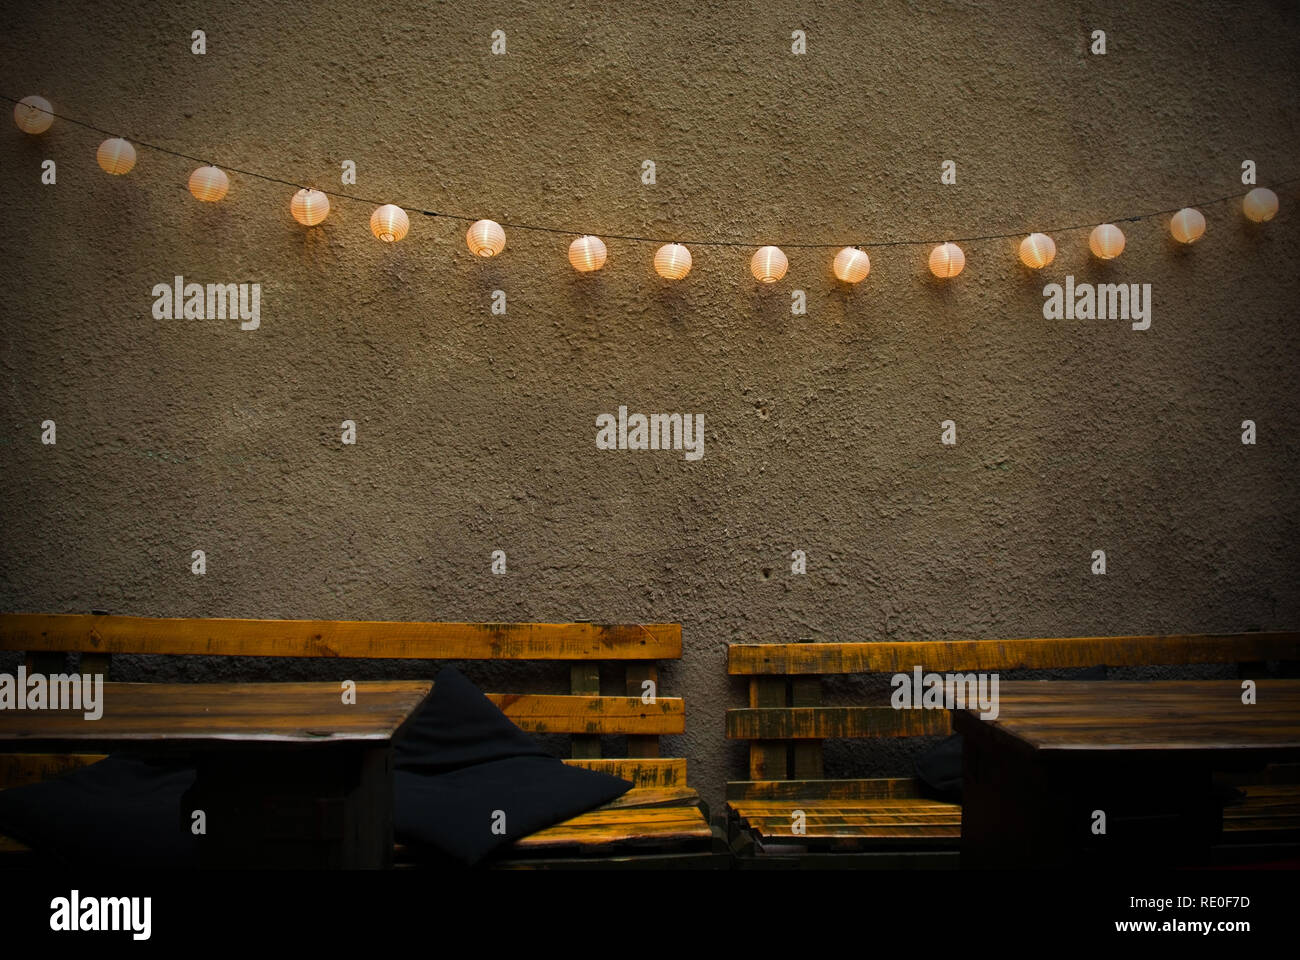 A decorative chain of lights strung across a wall in a beer garden at the back of a bar in Krakow, Poland - Stock Image